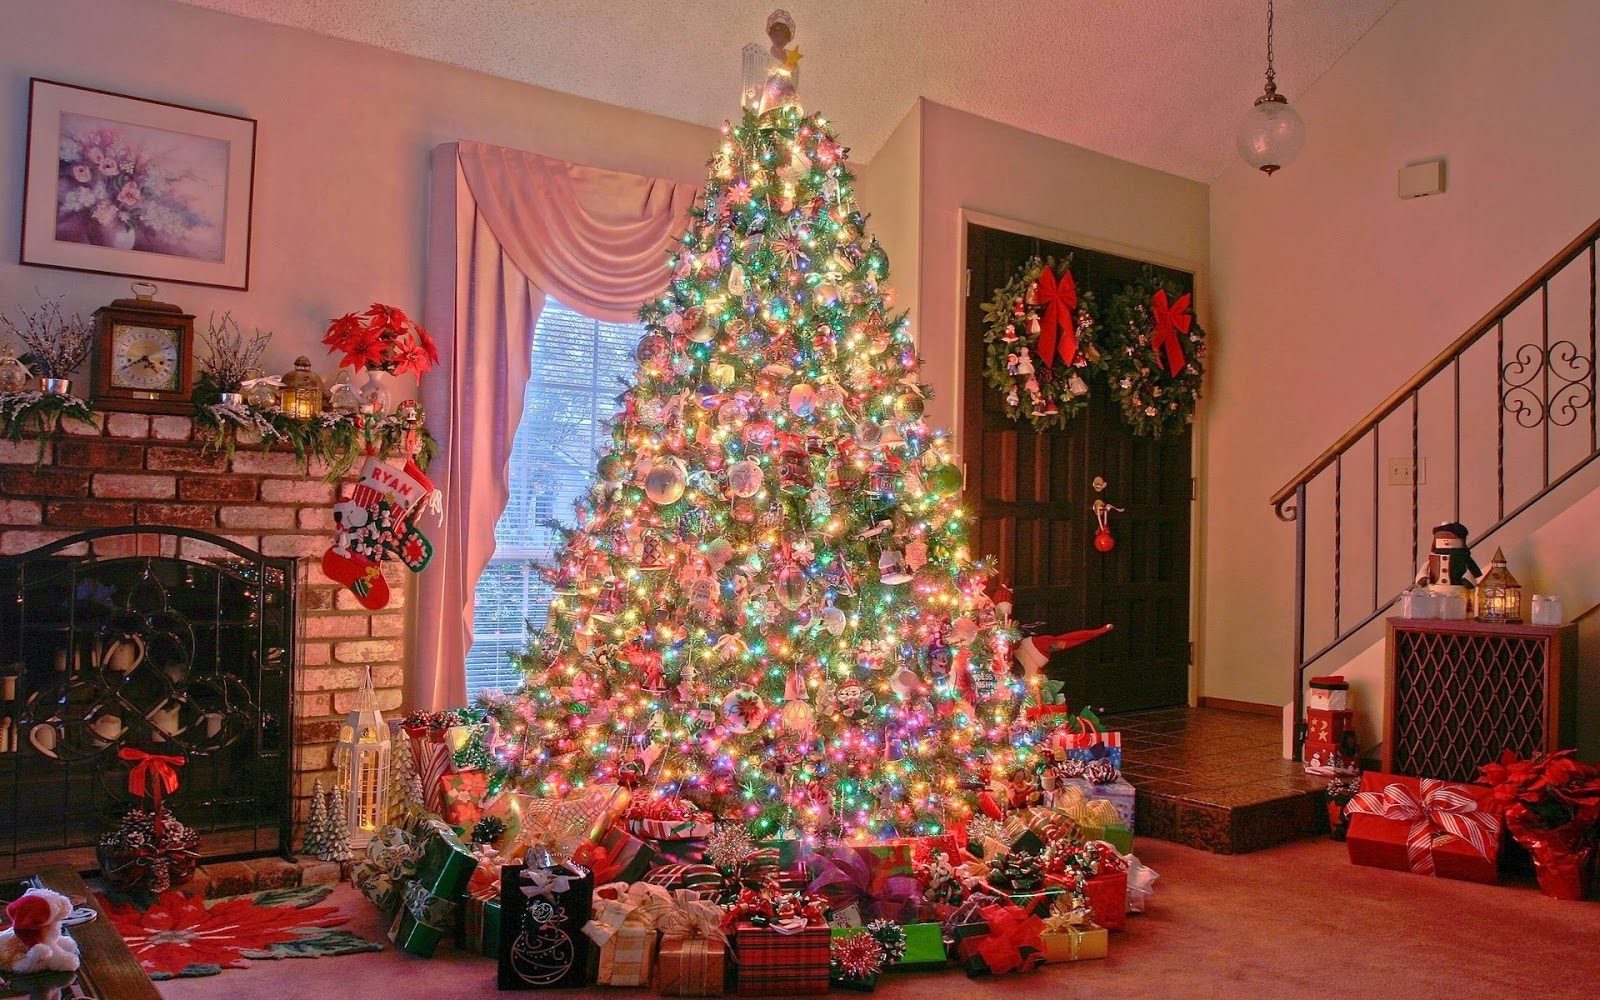 Beautiful-glowing-christmas-tree-decorated-in-hall-near-brick-fireplace-complete-setup-pictures.jpg